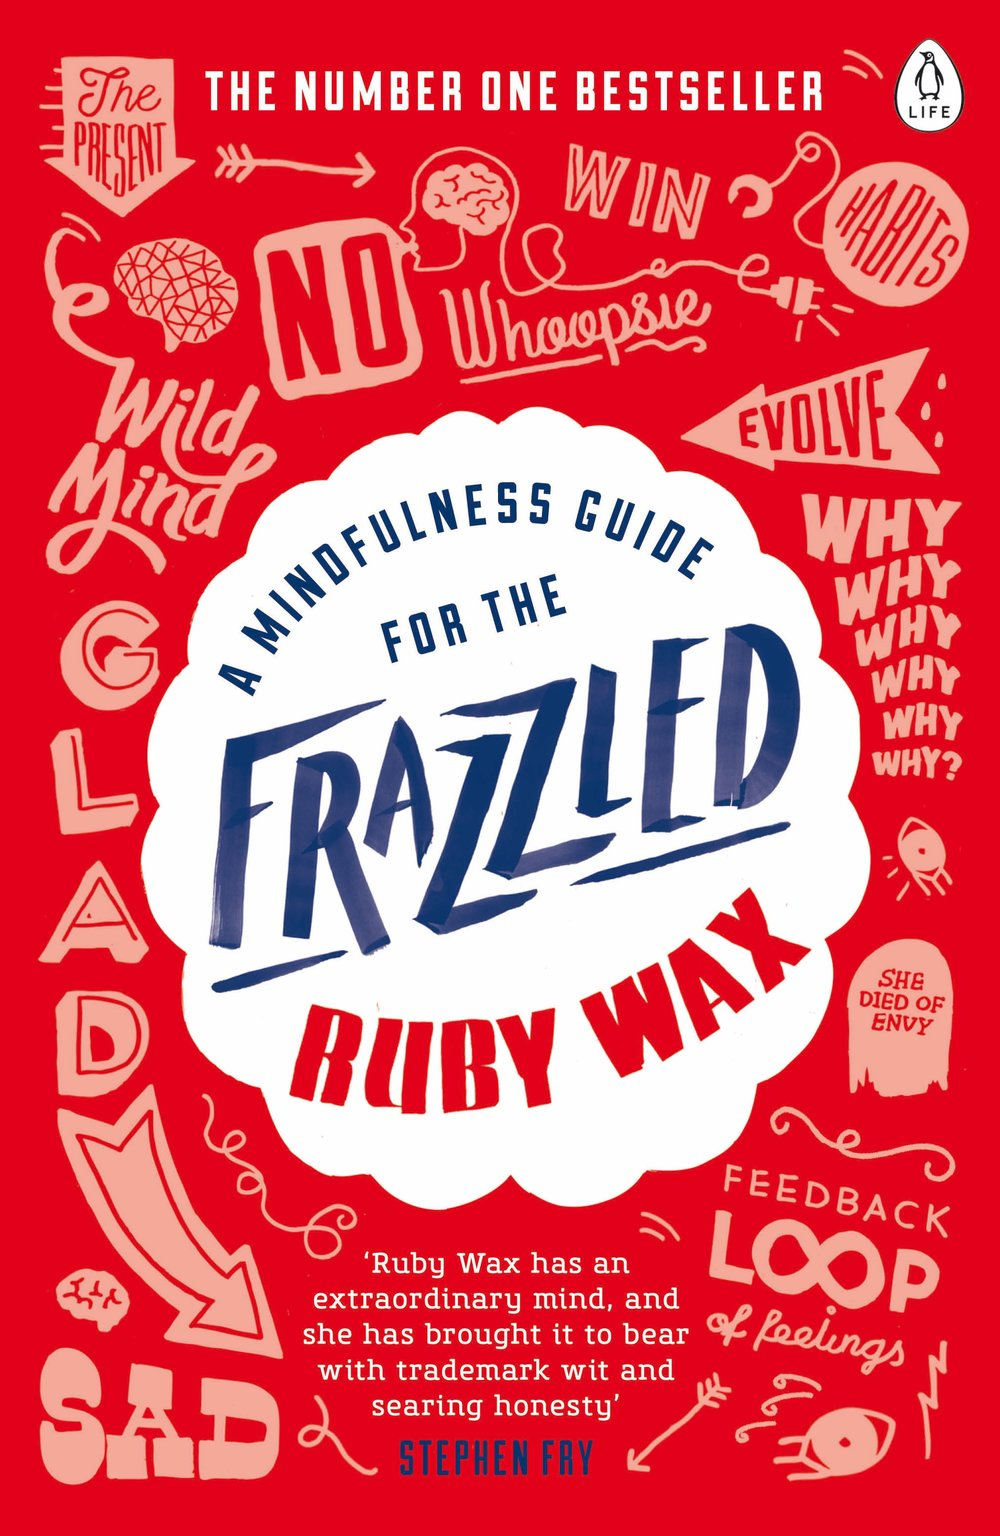 A Mindfulness Guide for the Frazzled was published by Penguin on 29 December 2016